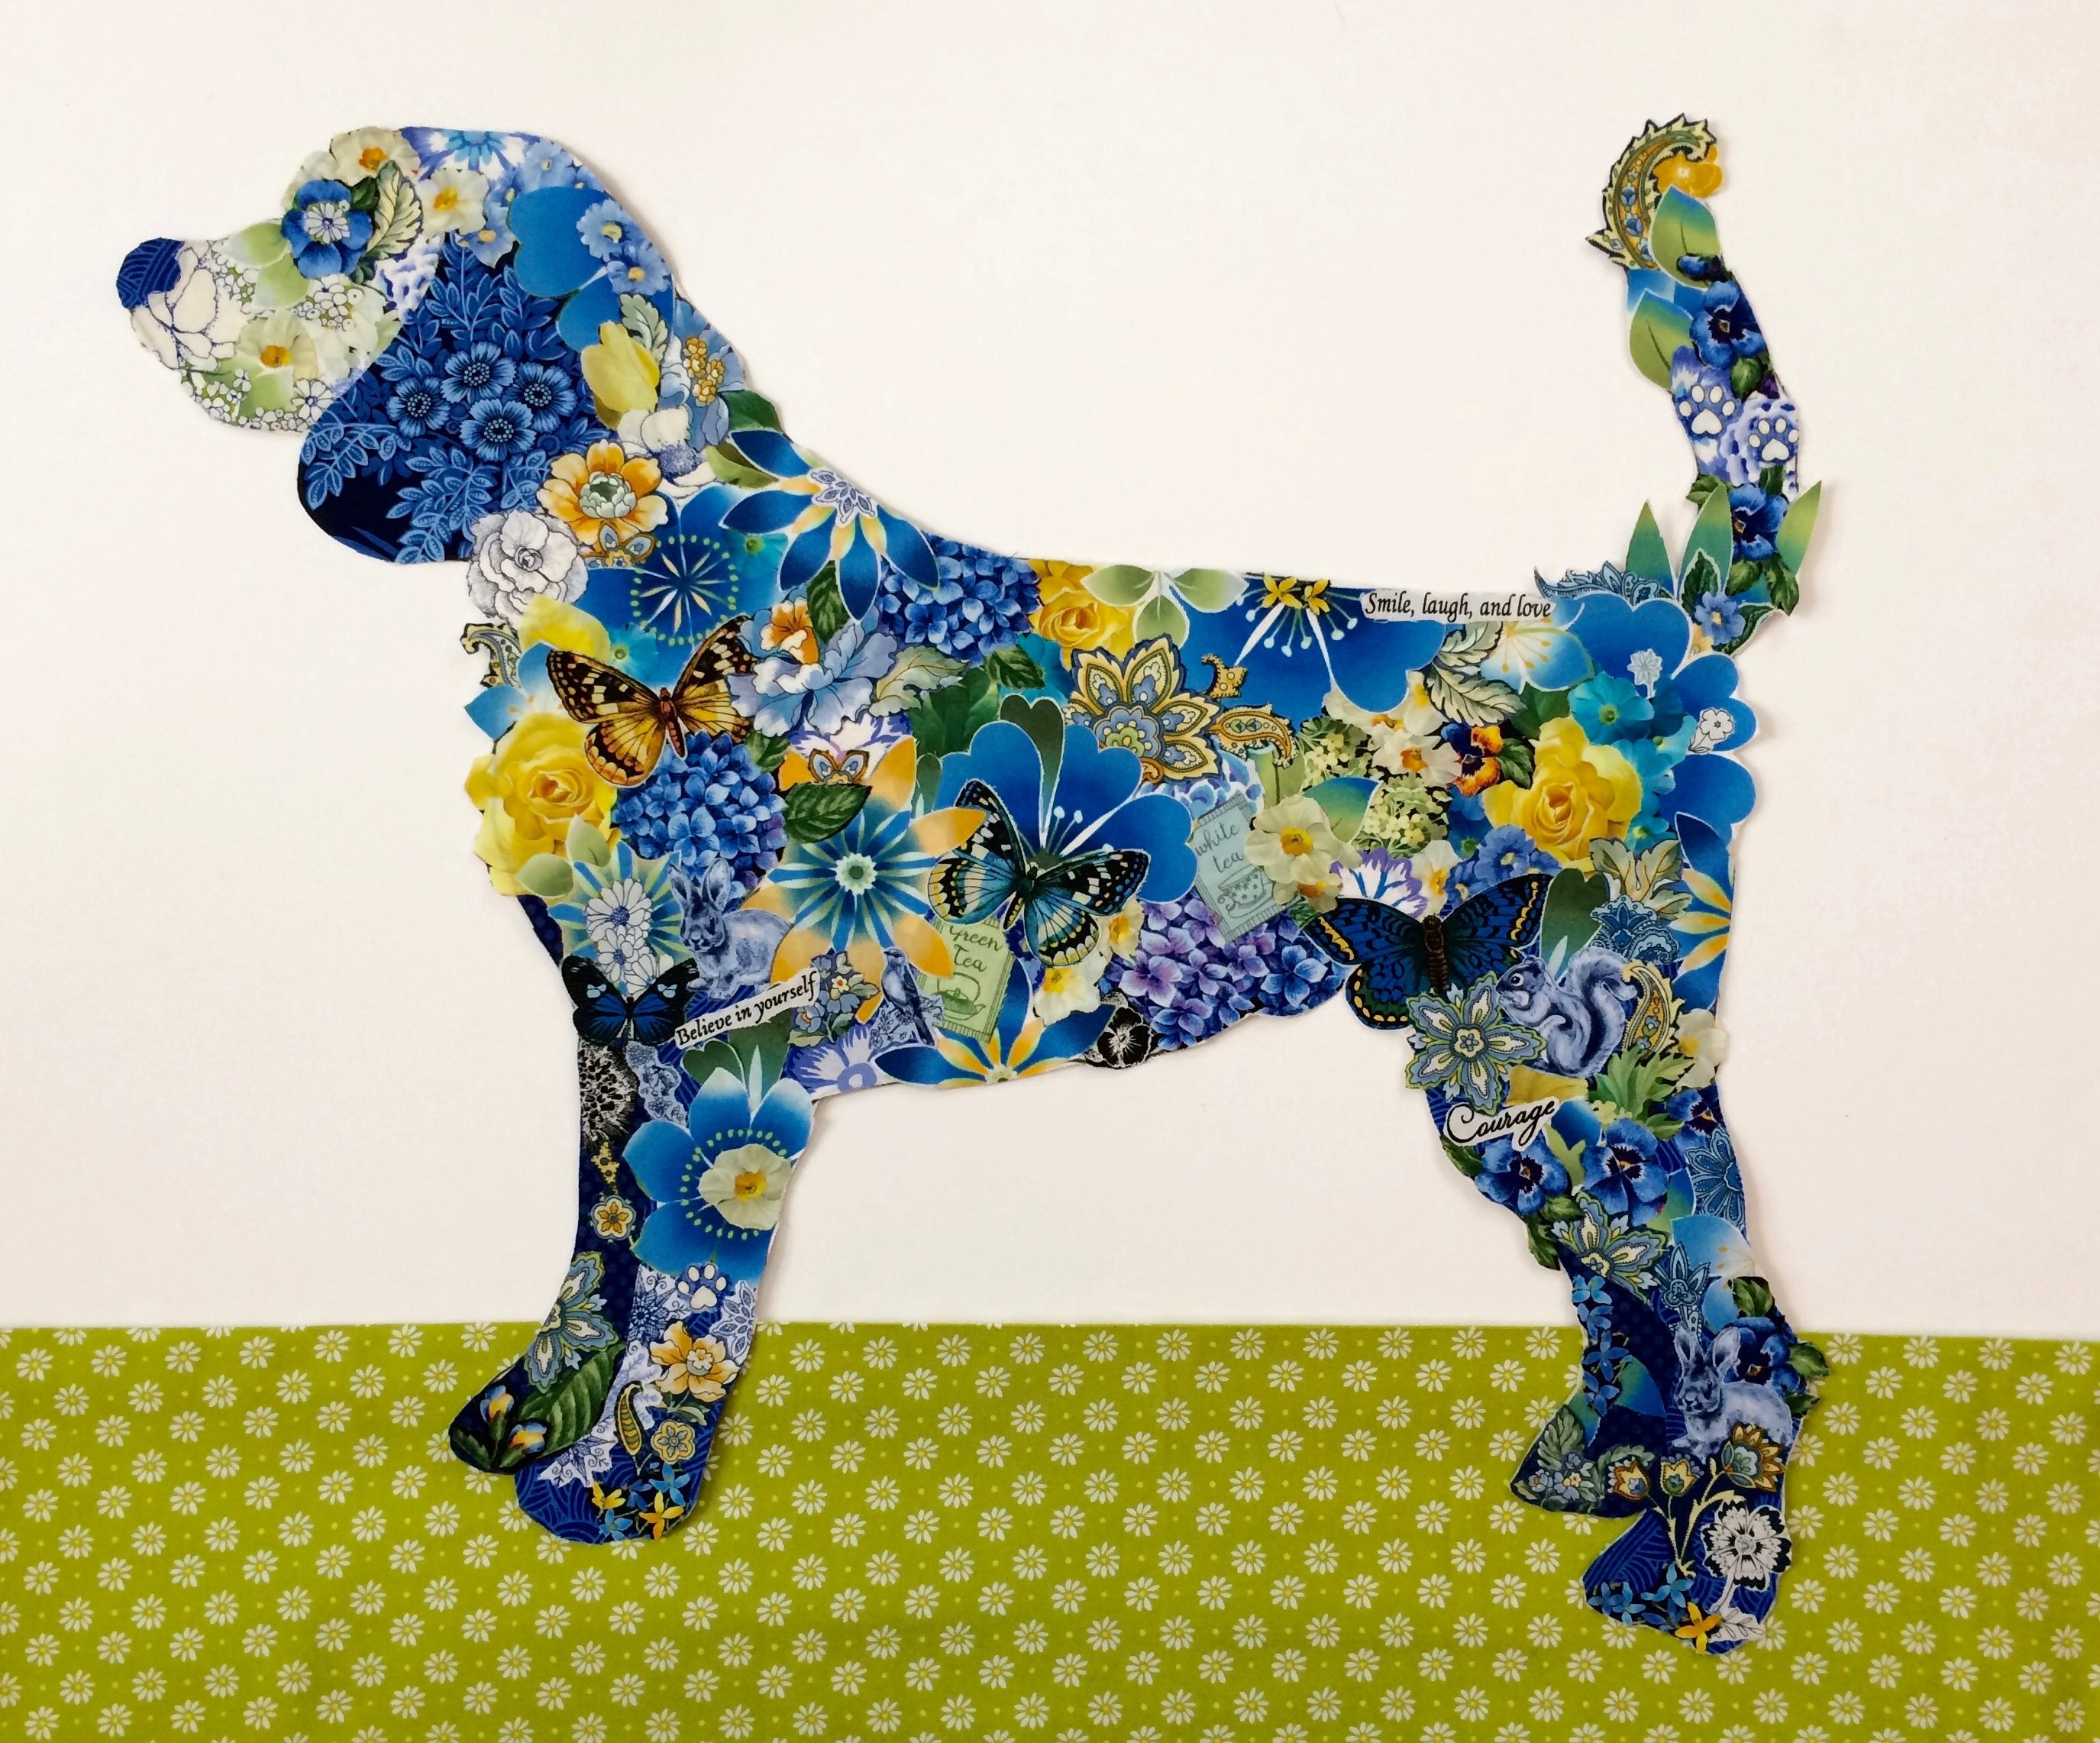 Blue Beagle Quilts Blog